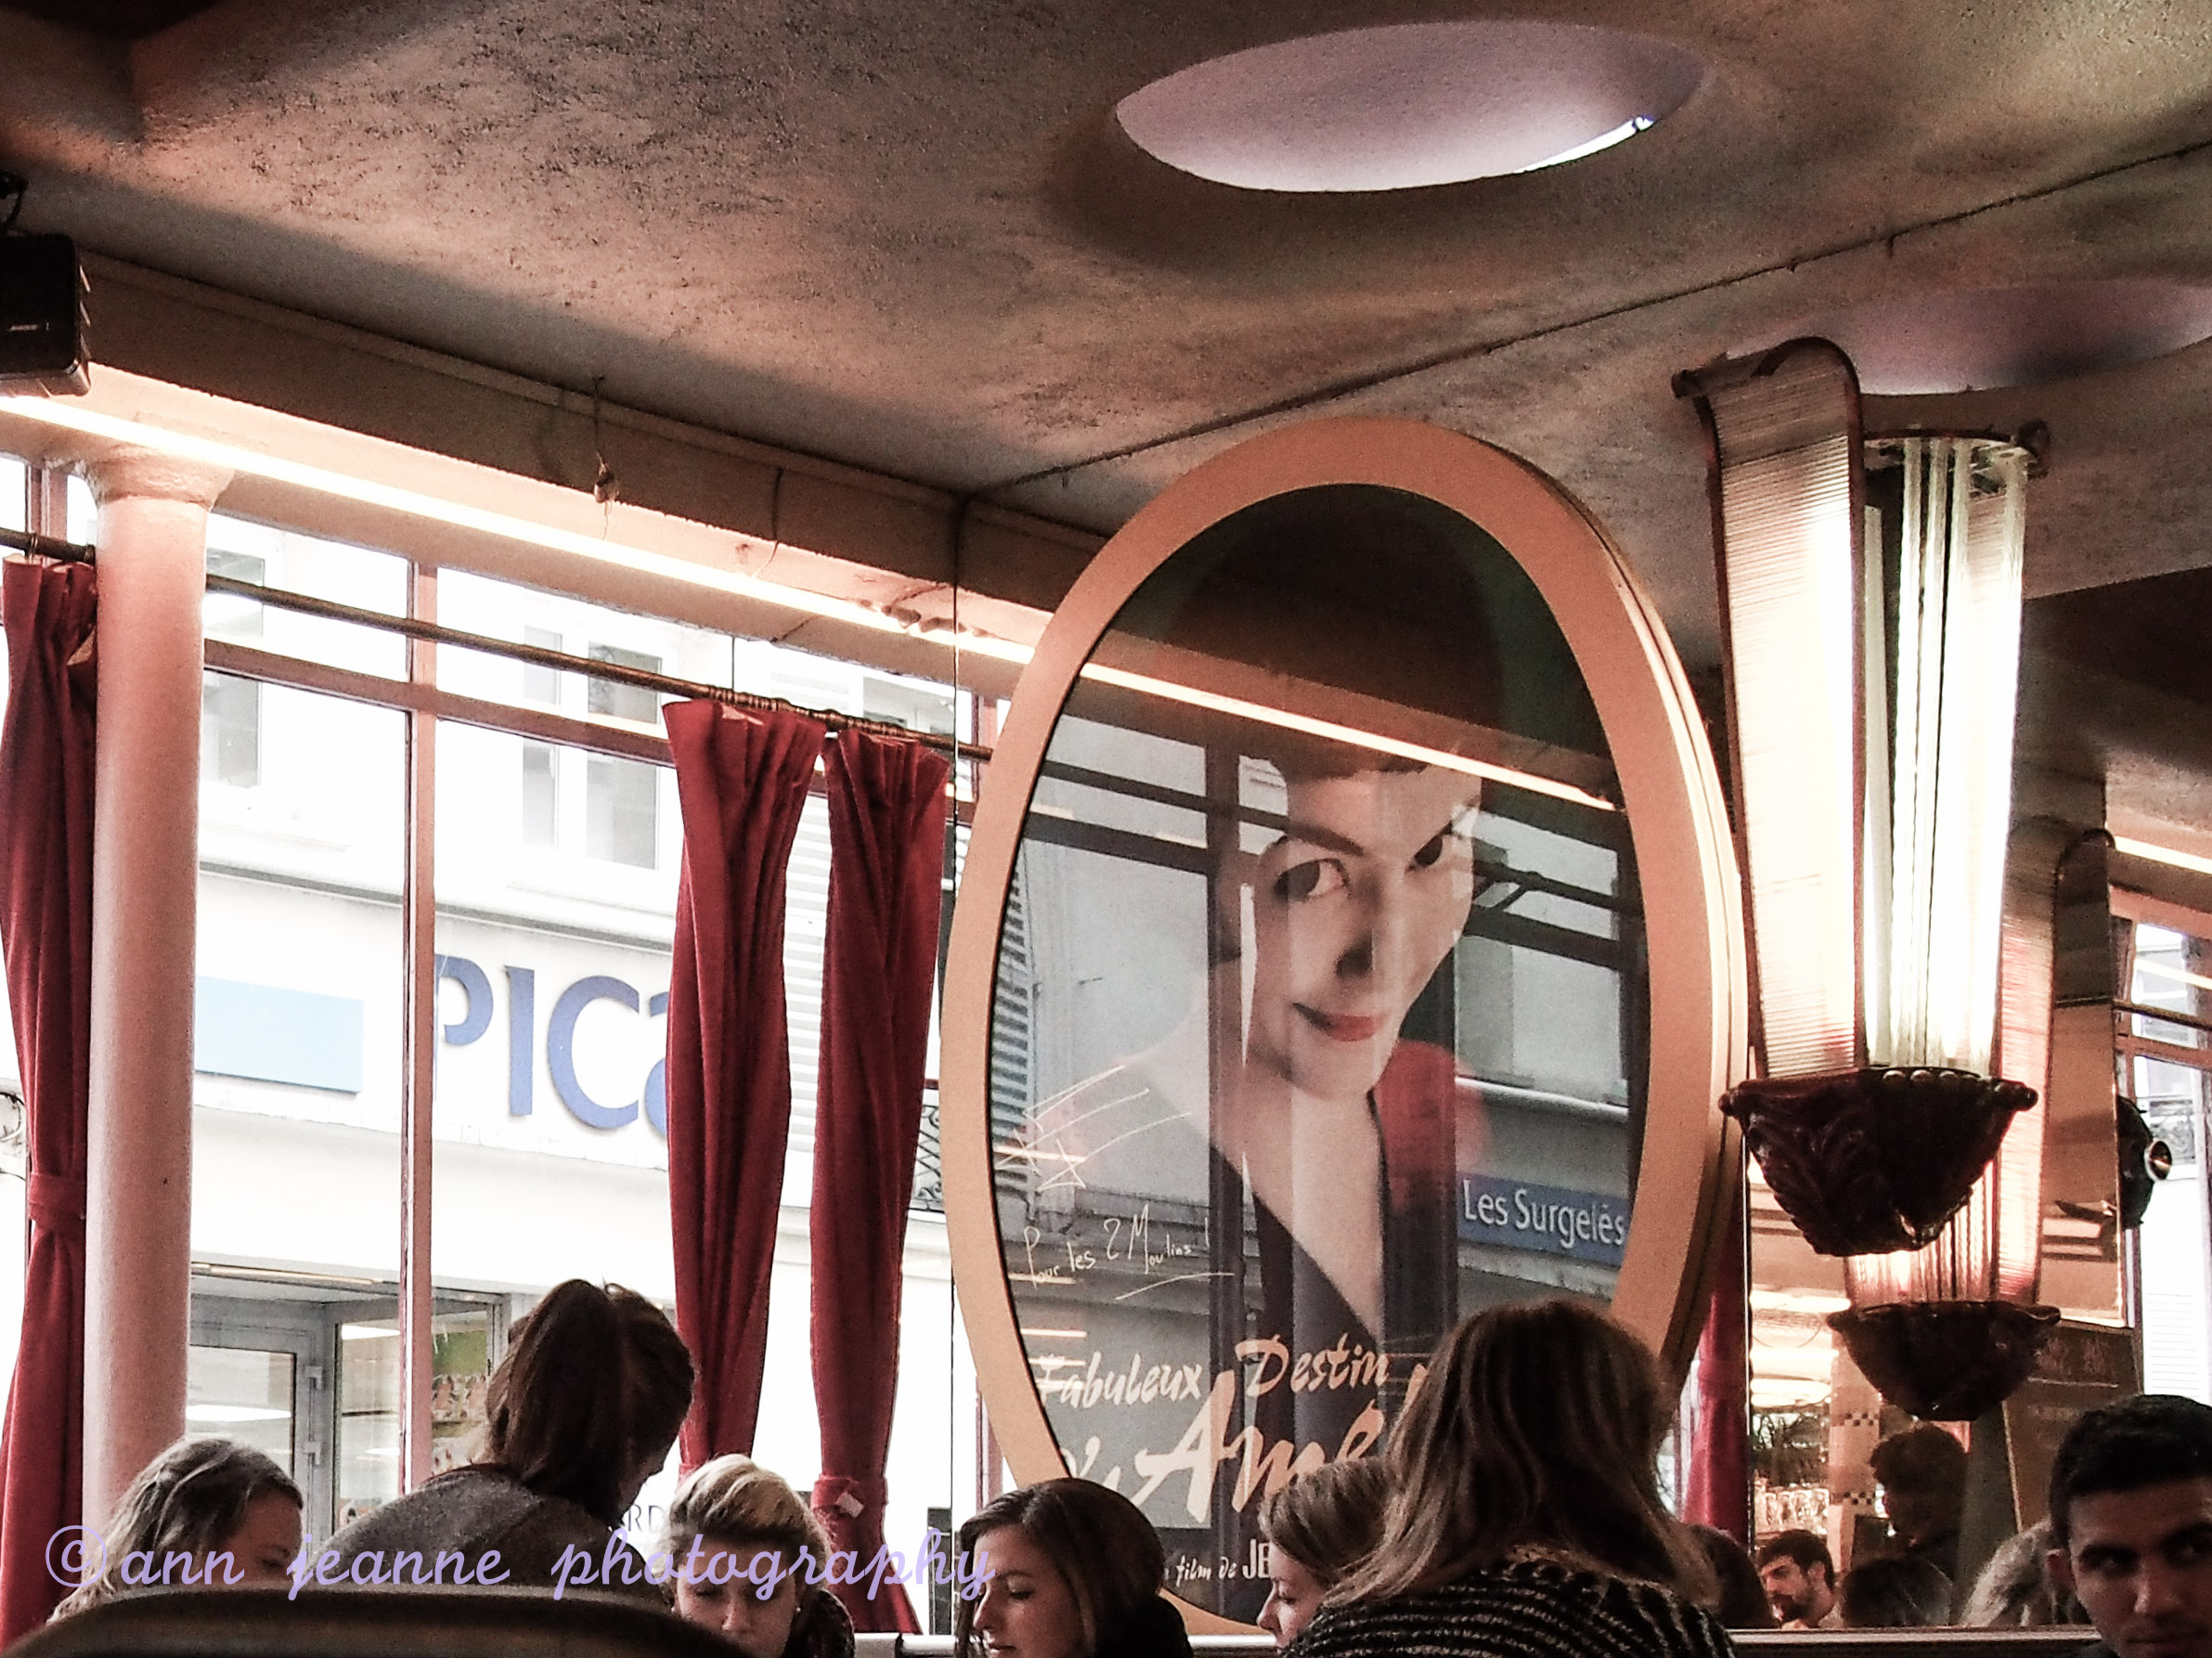 The Amelie's cafe